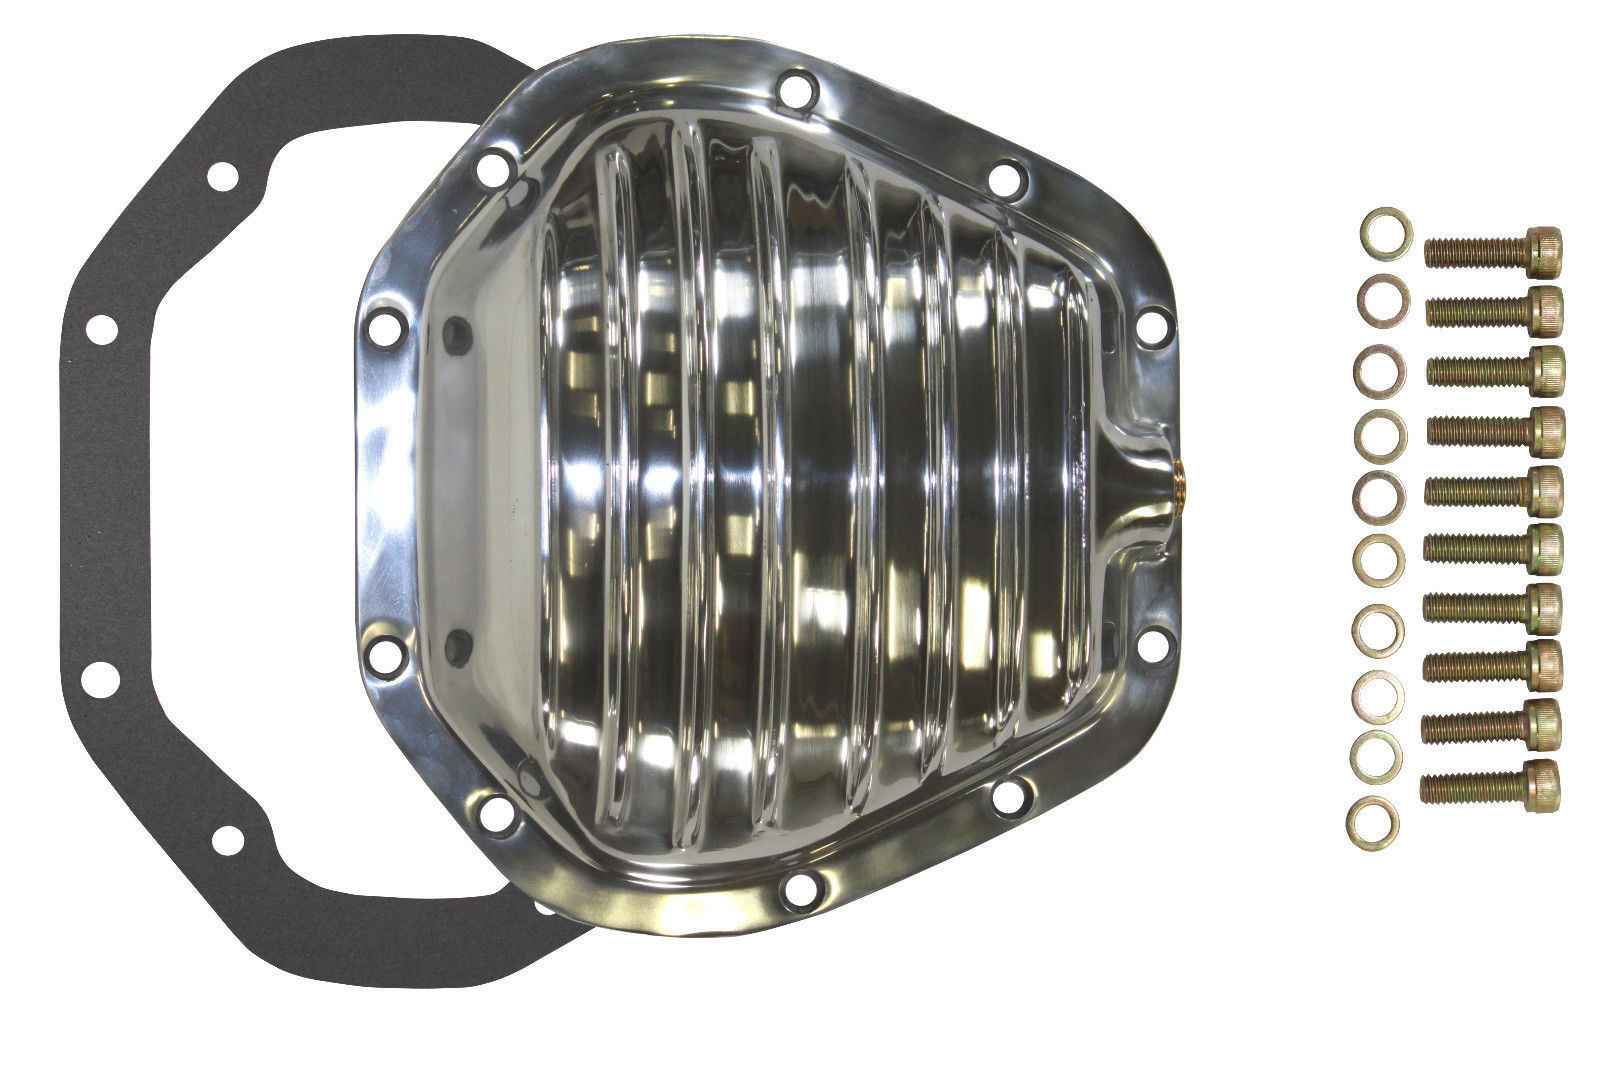 10 BOLT POLISHED ALUMINUM FRONT REAR DIFFERENTIAL COVER FOR DANA 60 DODGE FORD